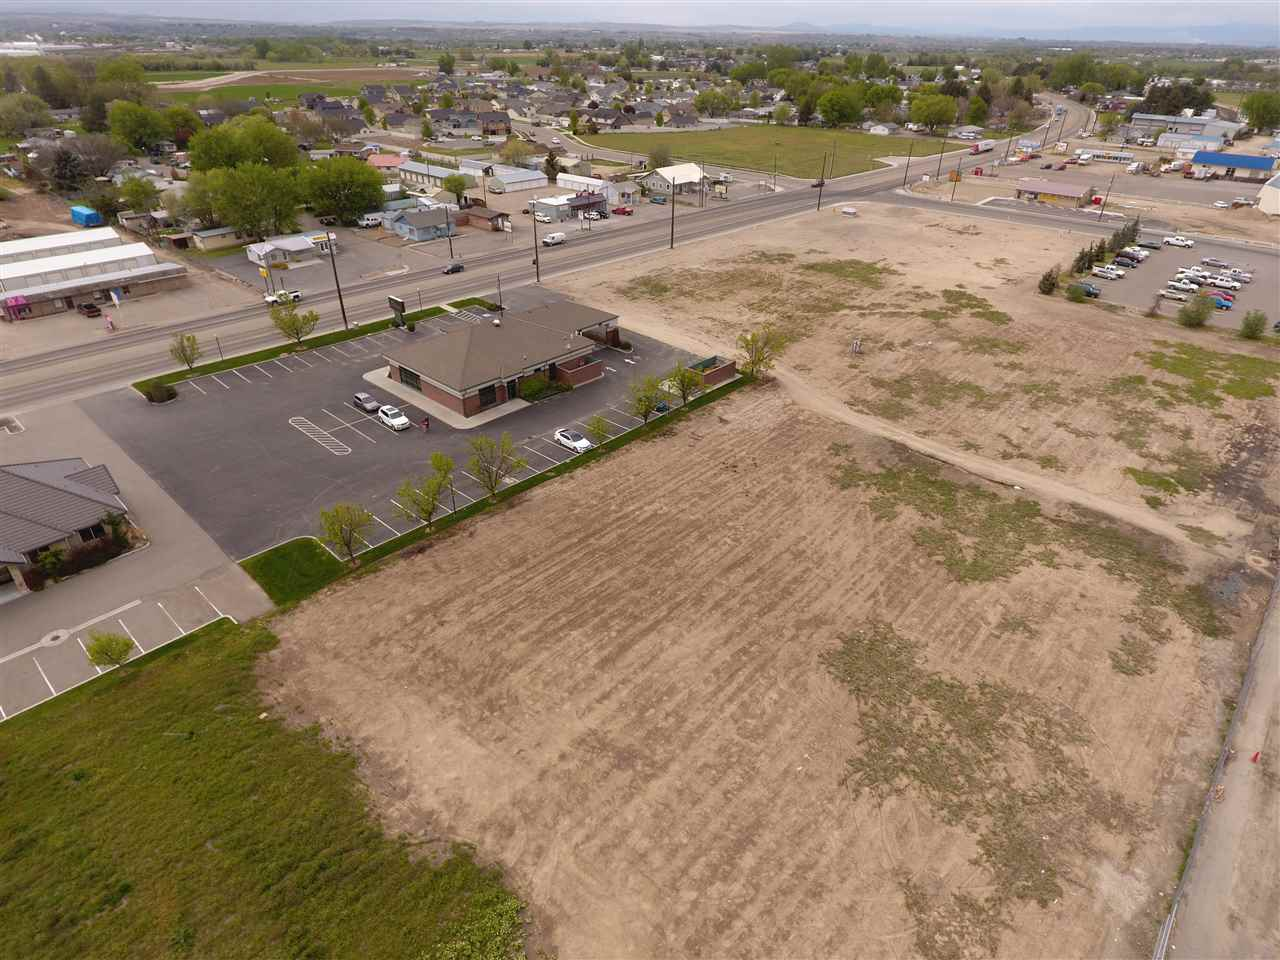 Additional photo for property listing at Tbd N Whitley - Lot 6  Fruitland, Idaho 83619